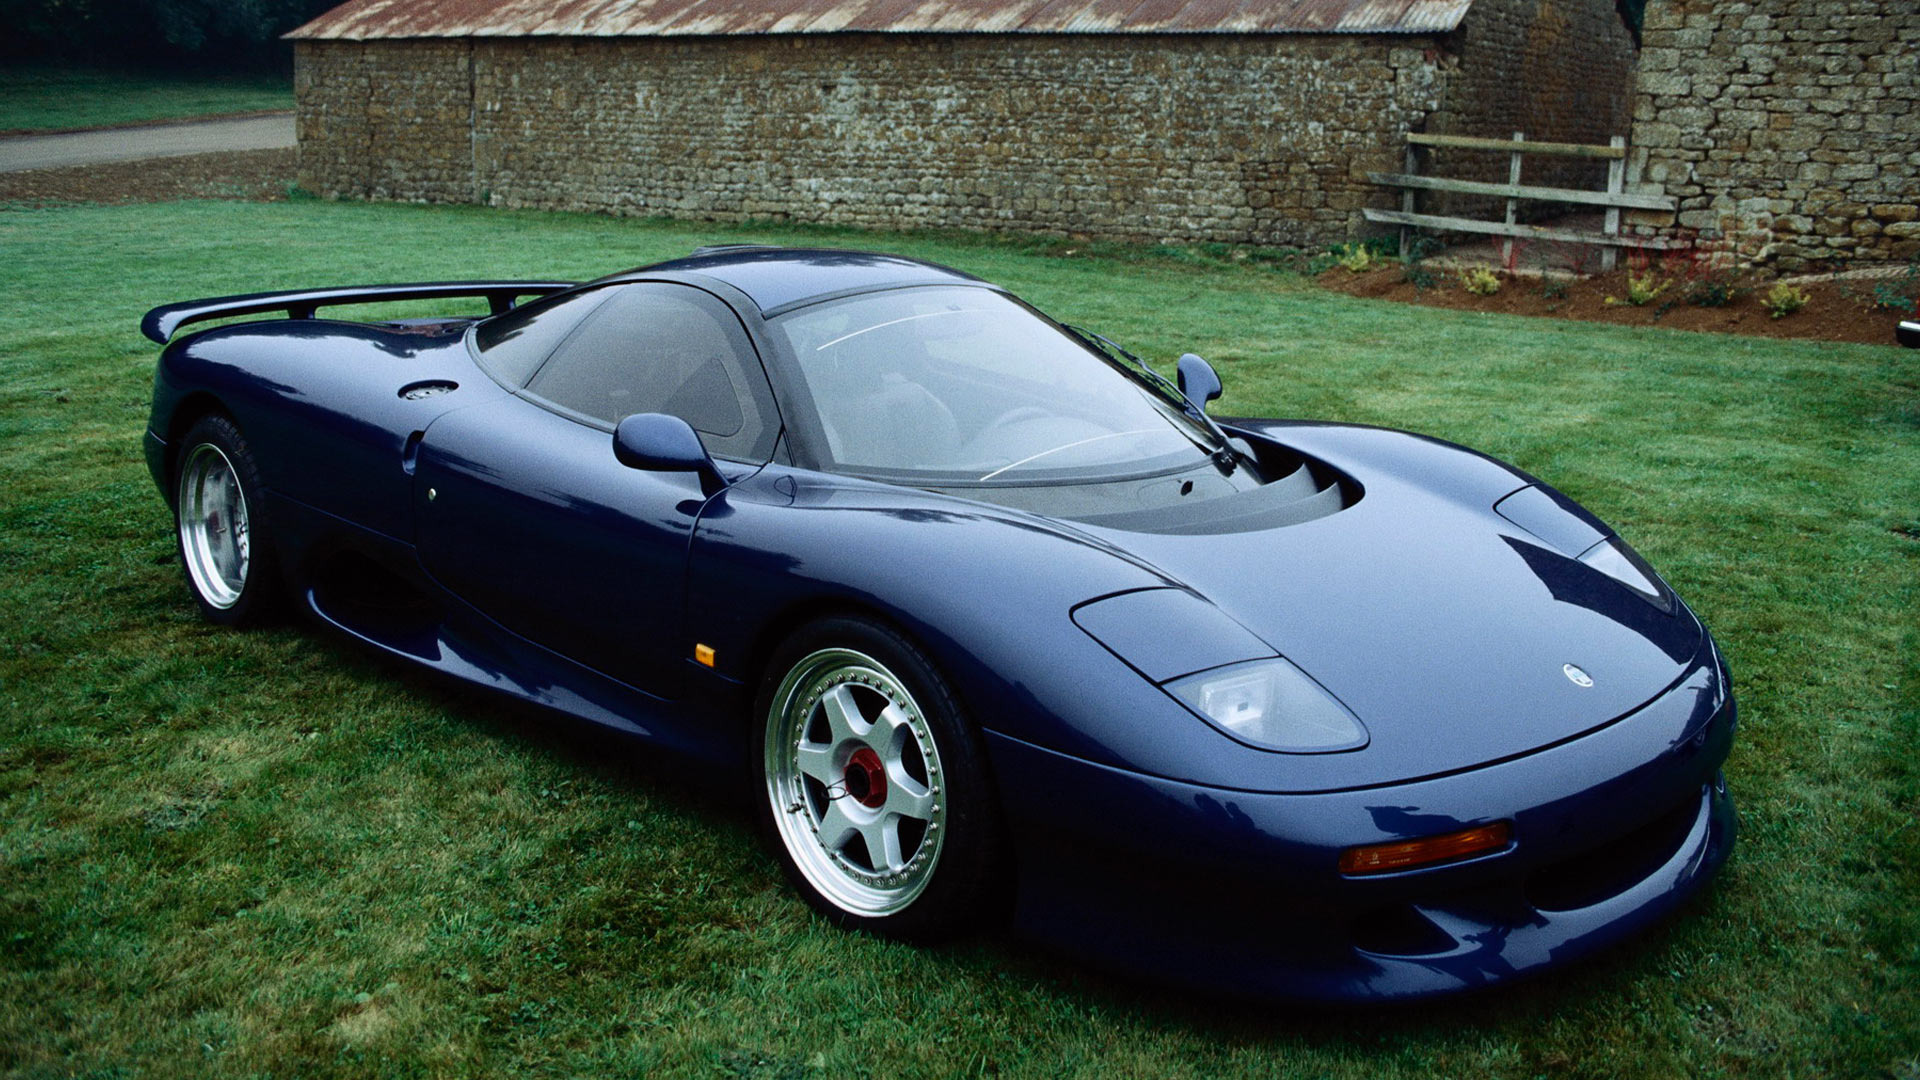 Jaguar xjr15 photo - 1